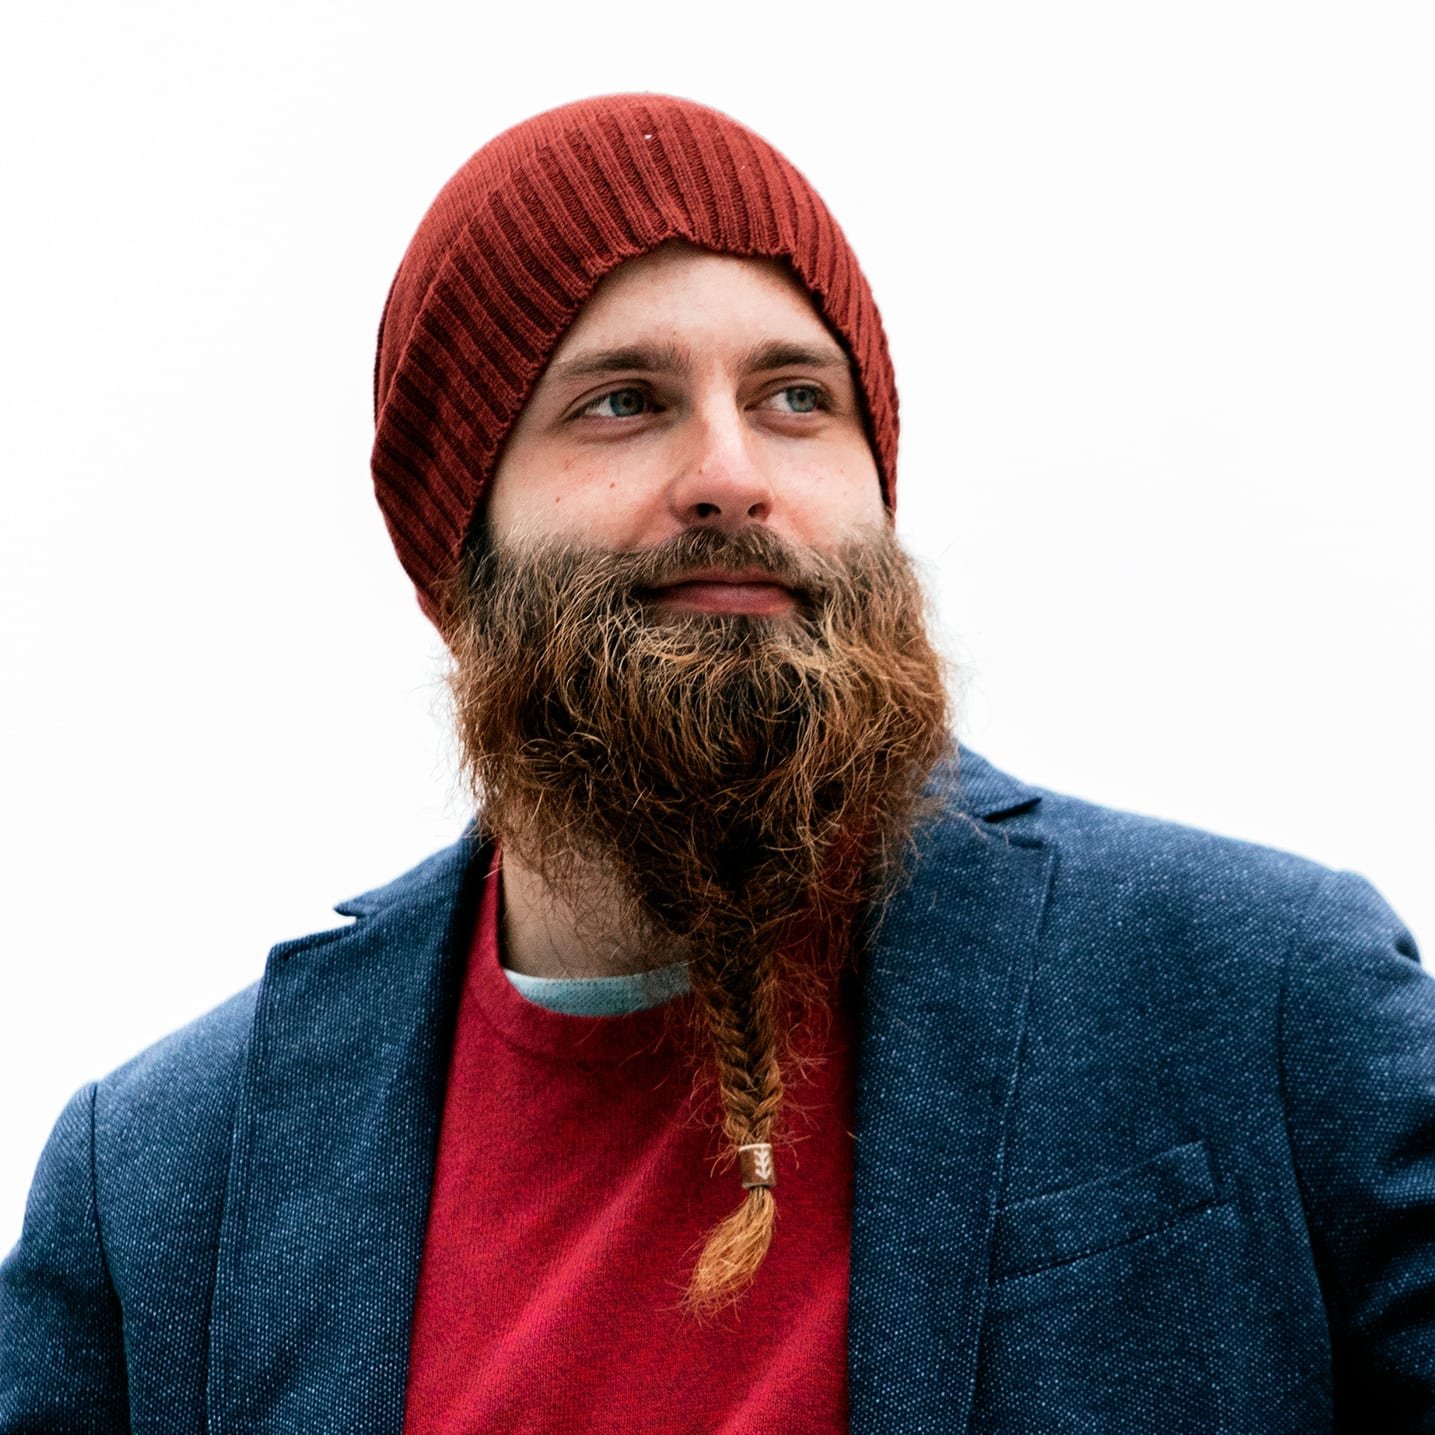 Braided Beards: A Fun Twist